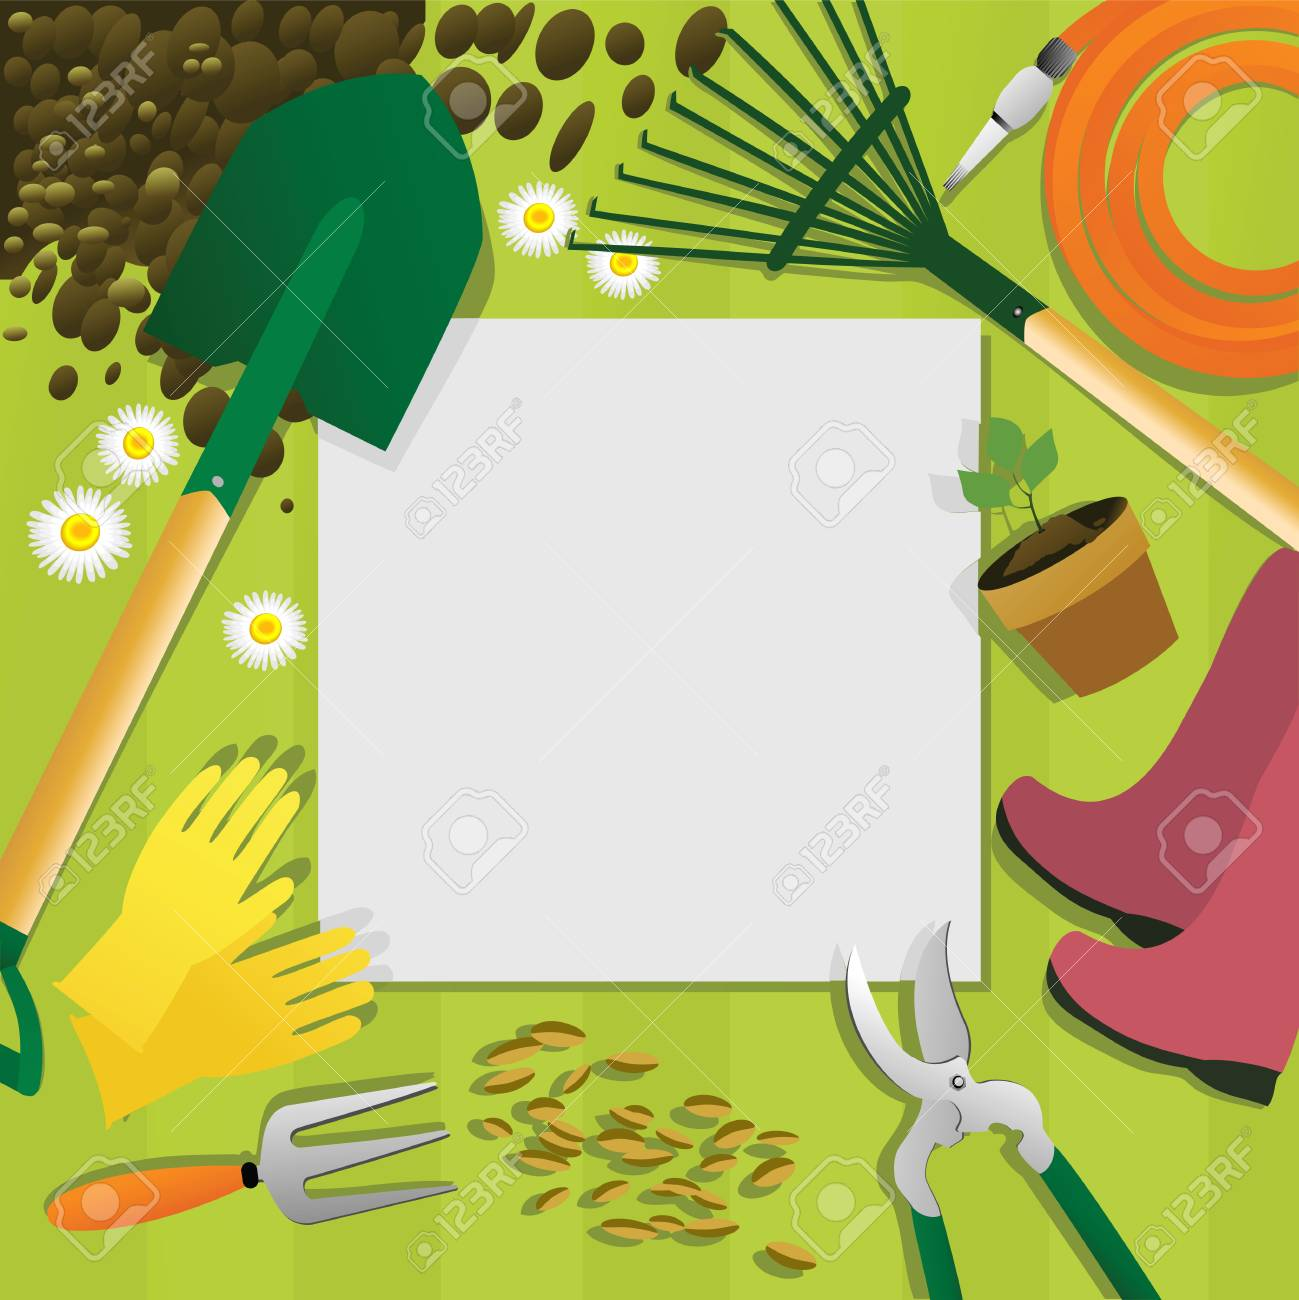 Gardening Background With Garden Tools Royalty Free Cliparts